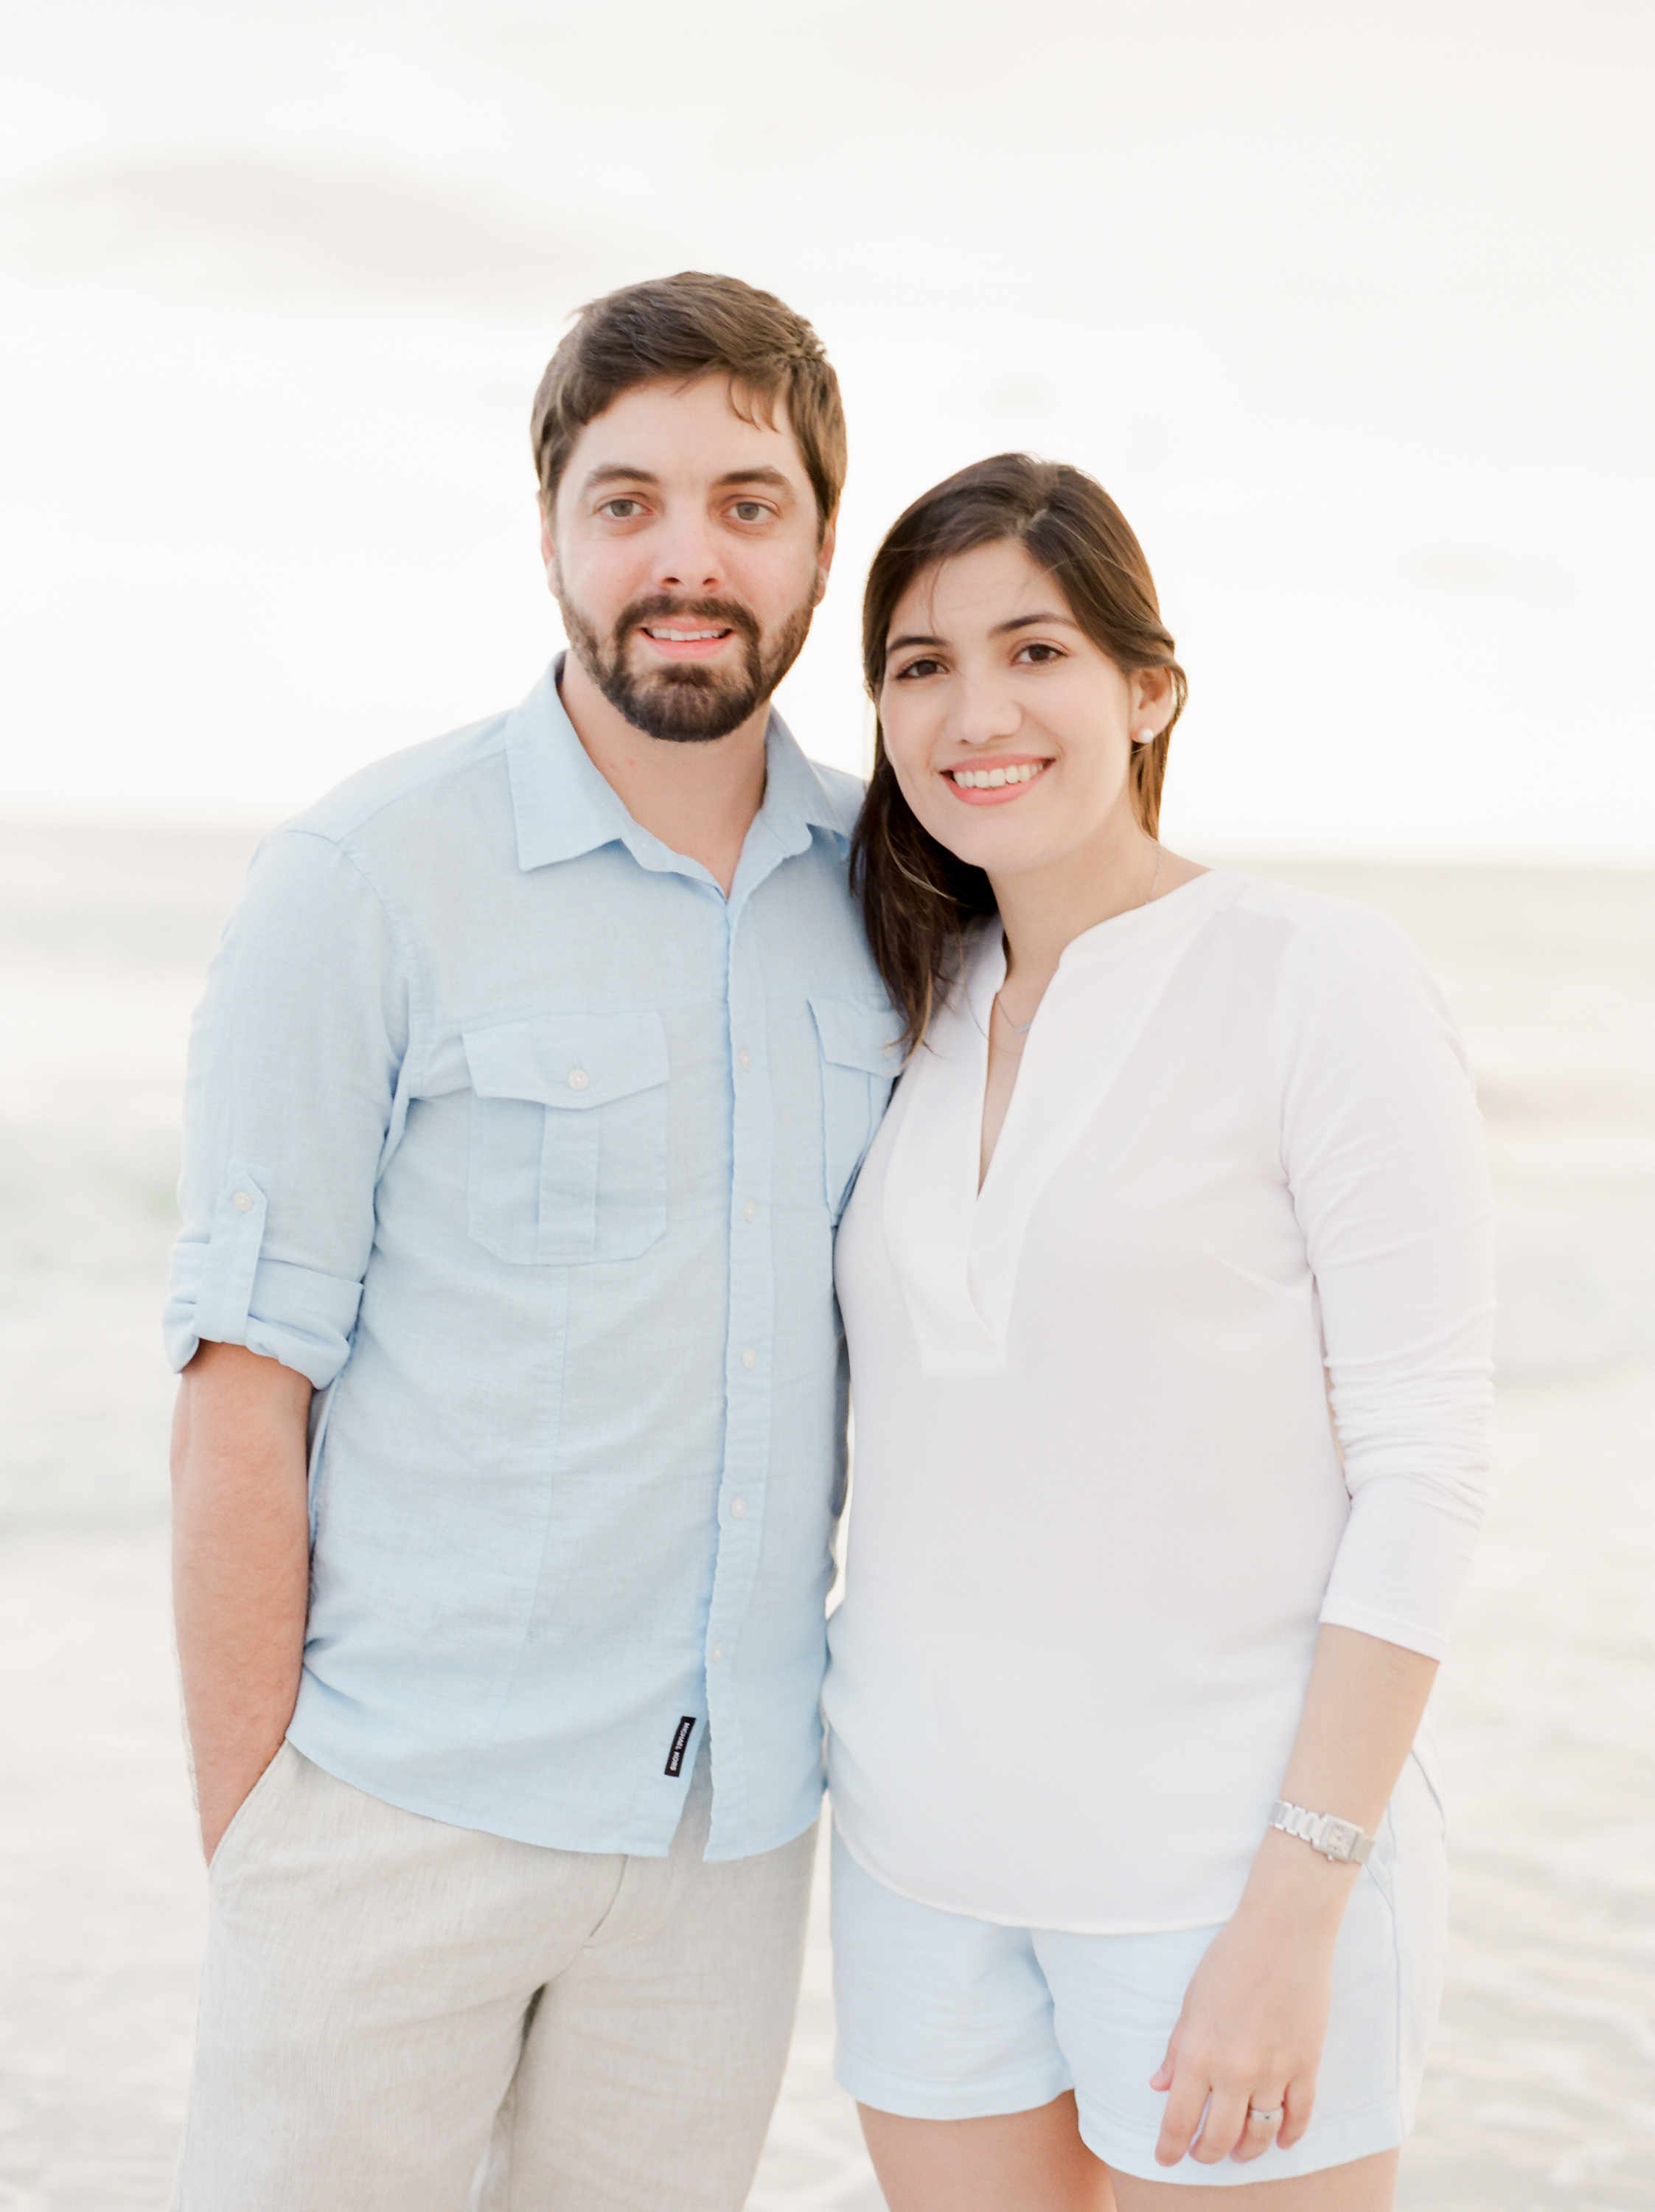 Neutral outfits for seaside engagement pictures | Kaylie B. Poplin Photography | Destin, Florida fine art photographer